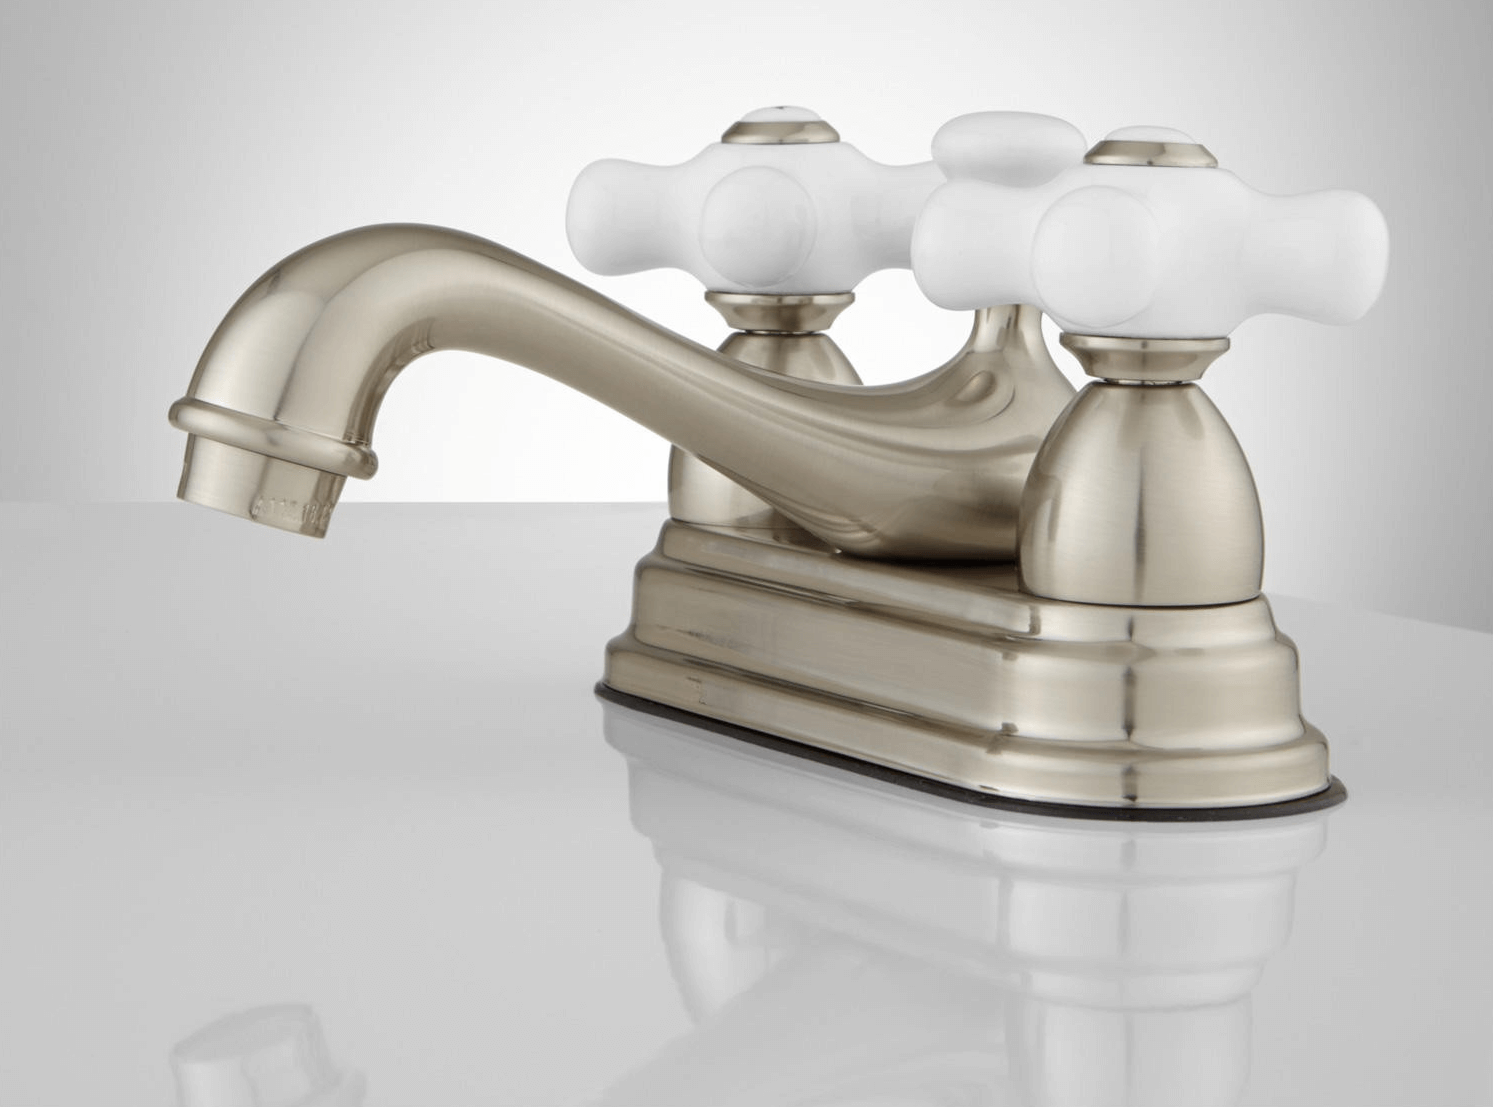 Bathroom Faucets Porcelain handles